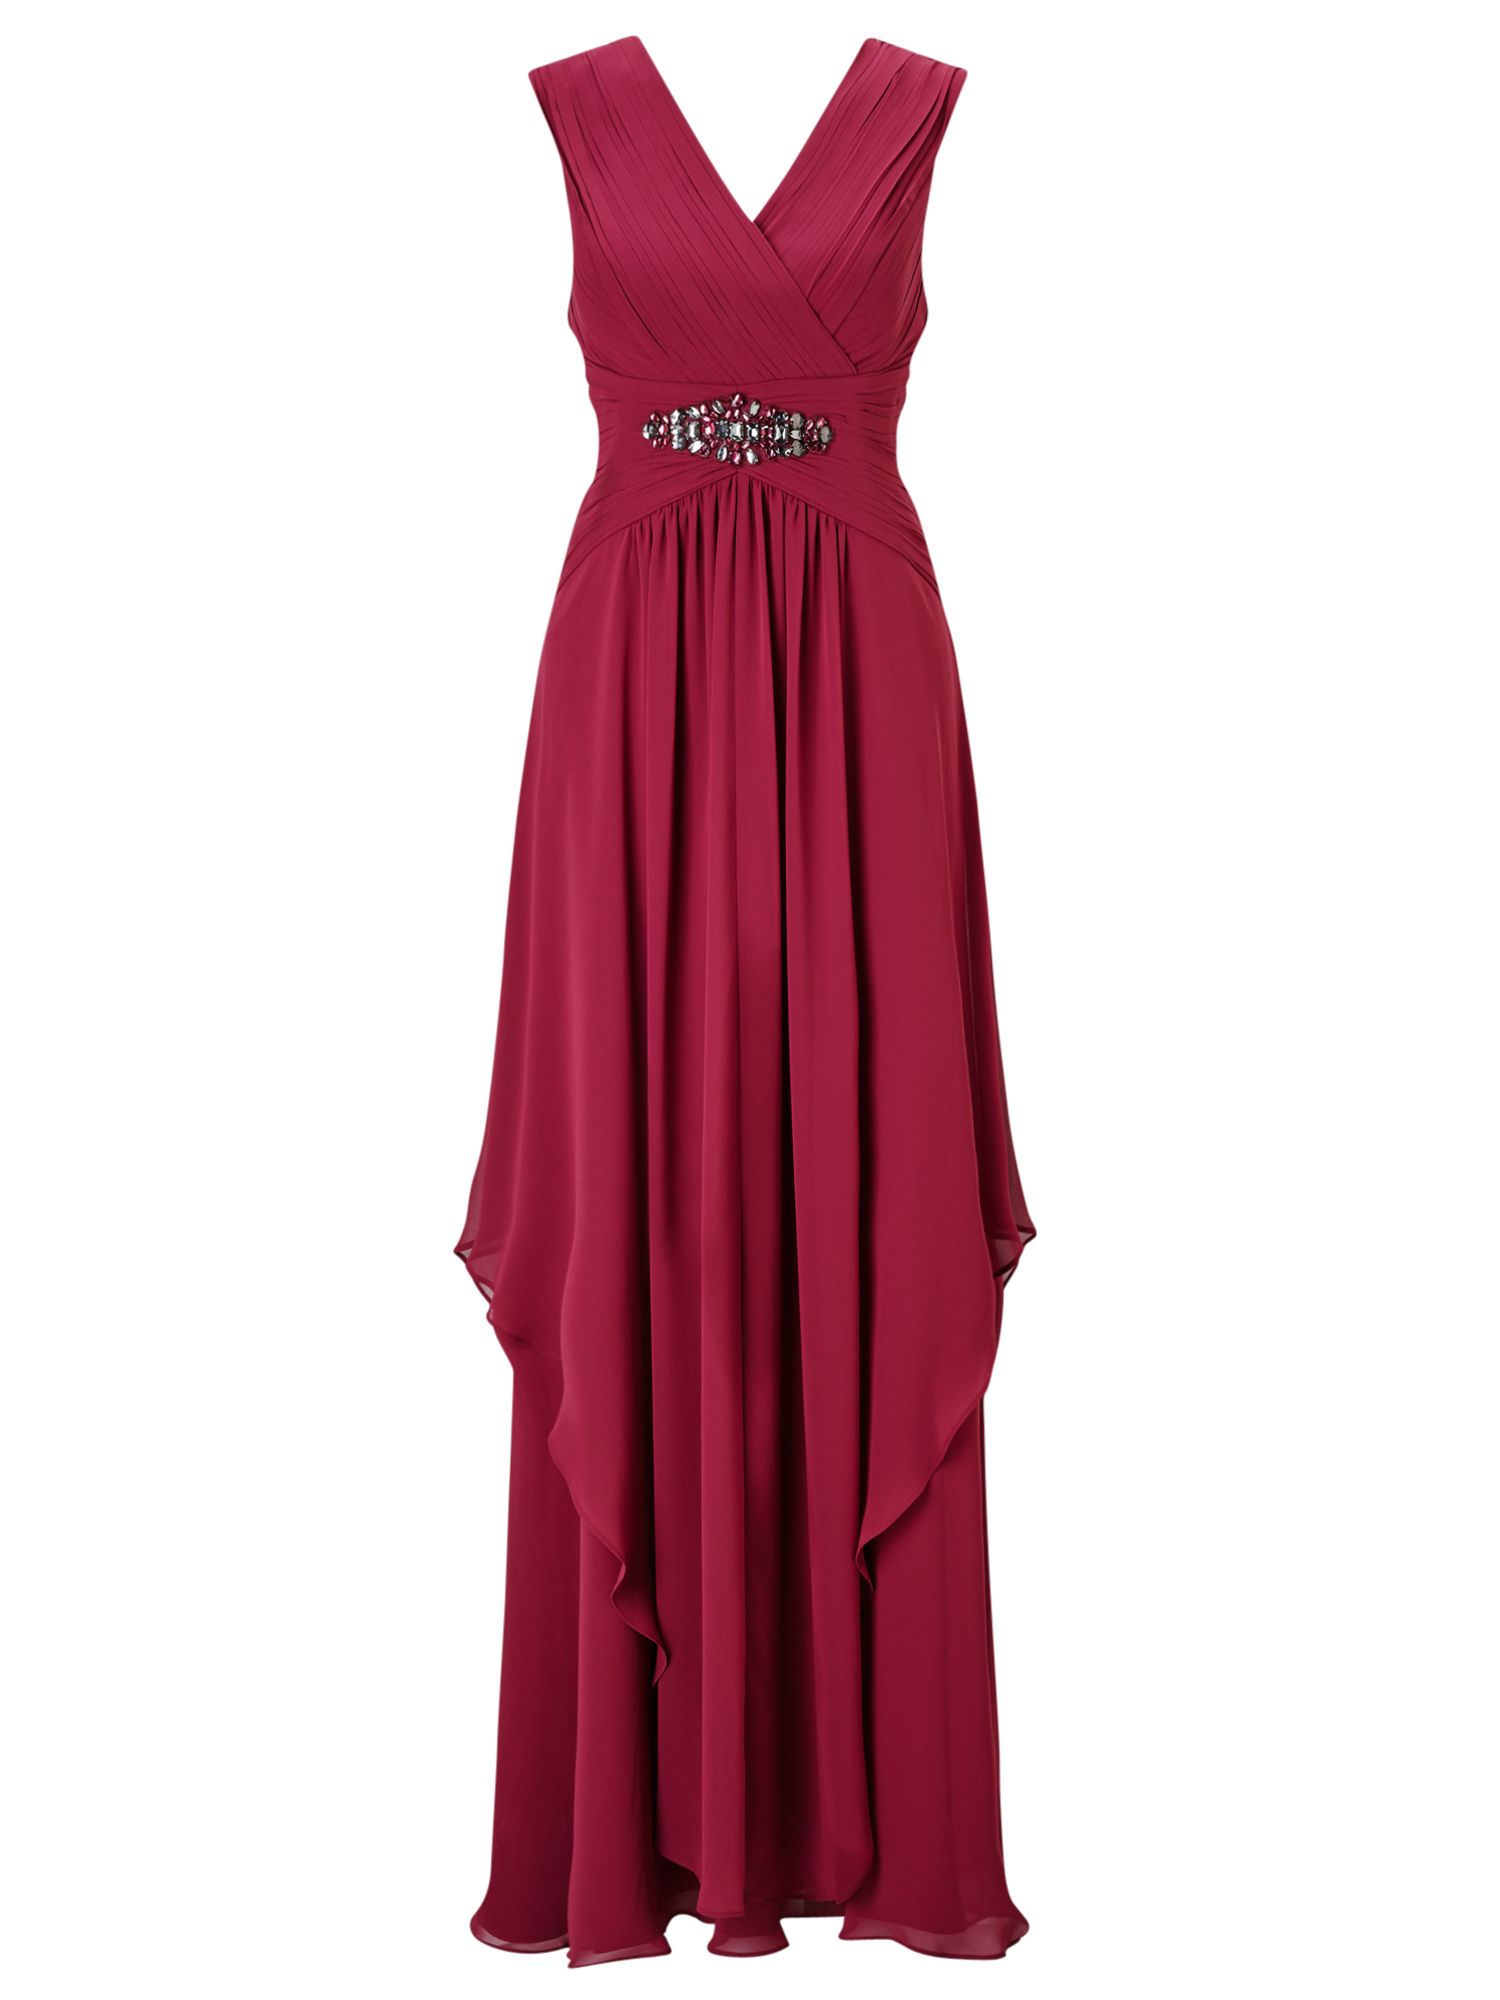 Jacques Vert Maxi Hanky Hem Dress Red £179.00 AT vintagedancer.com